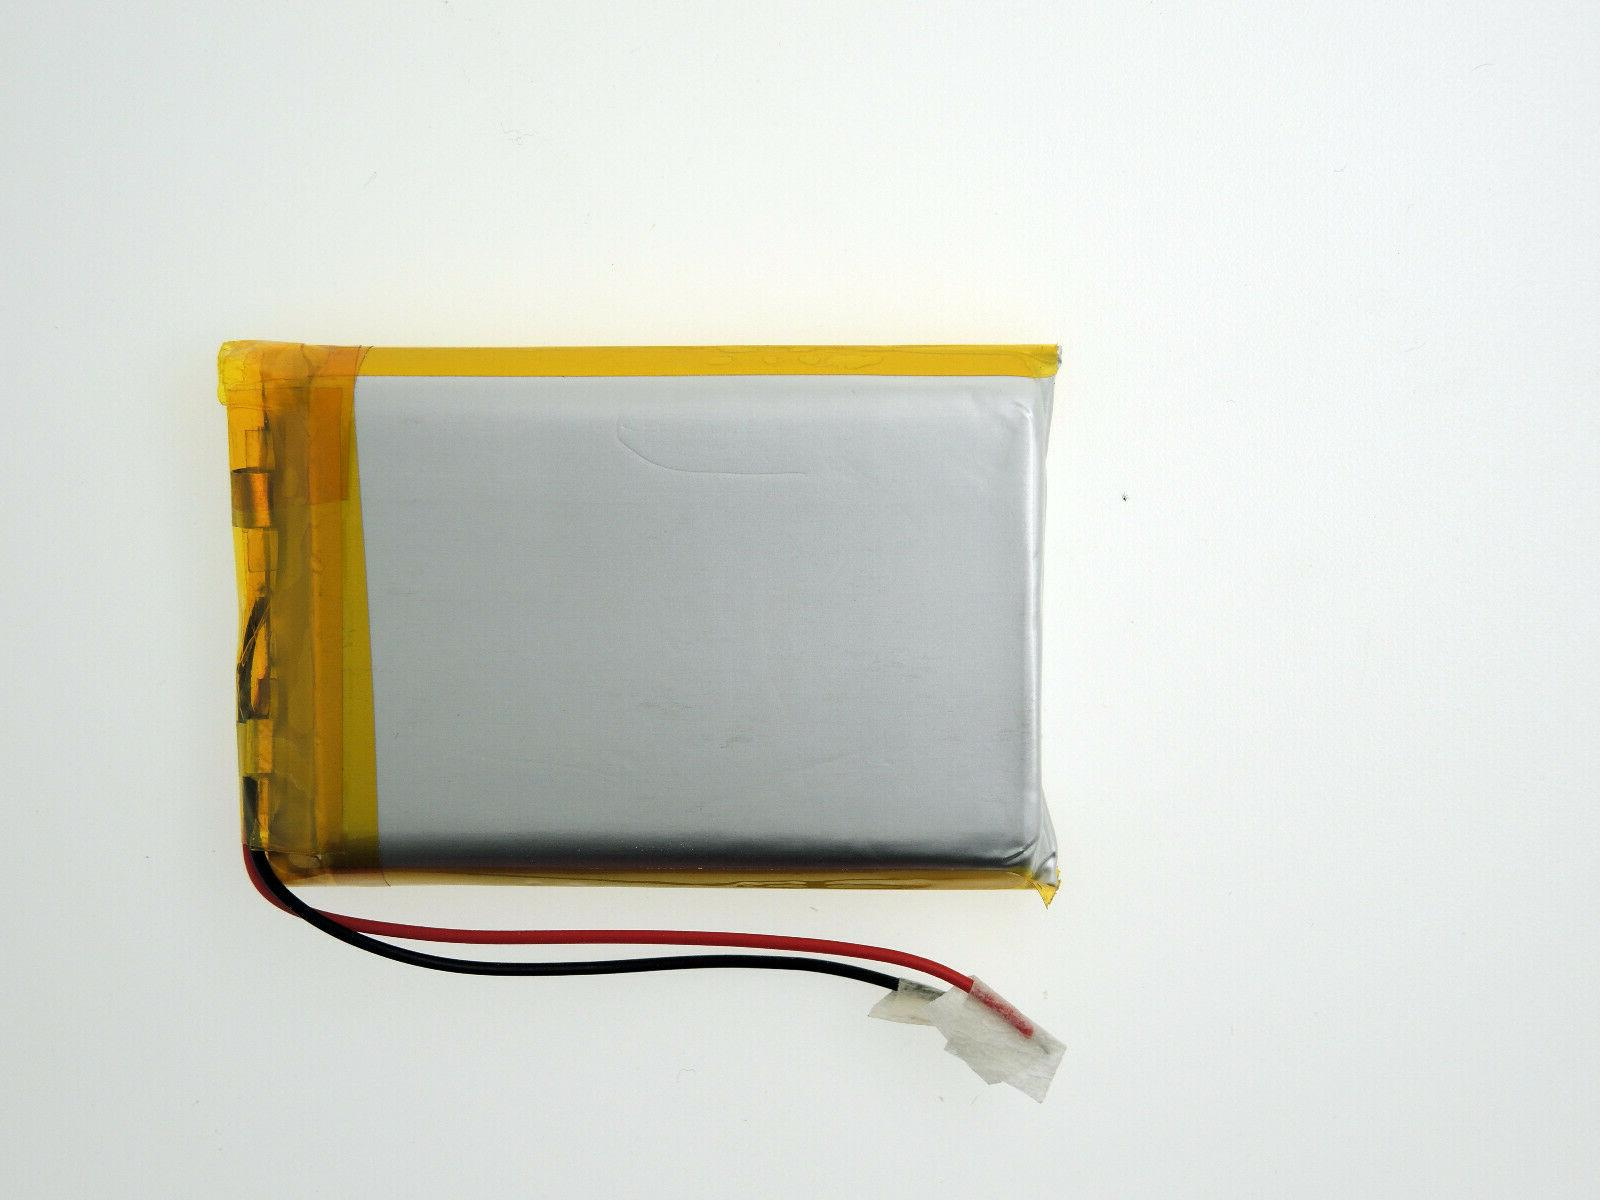 3.7V 3000mAh Polymer Rechargeable Battery